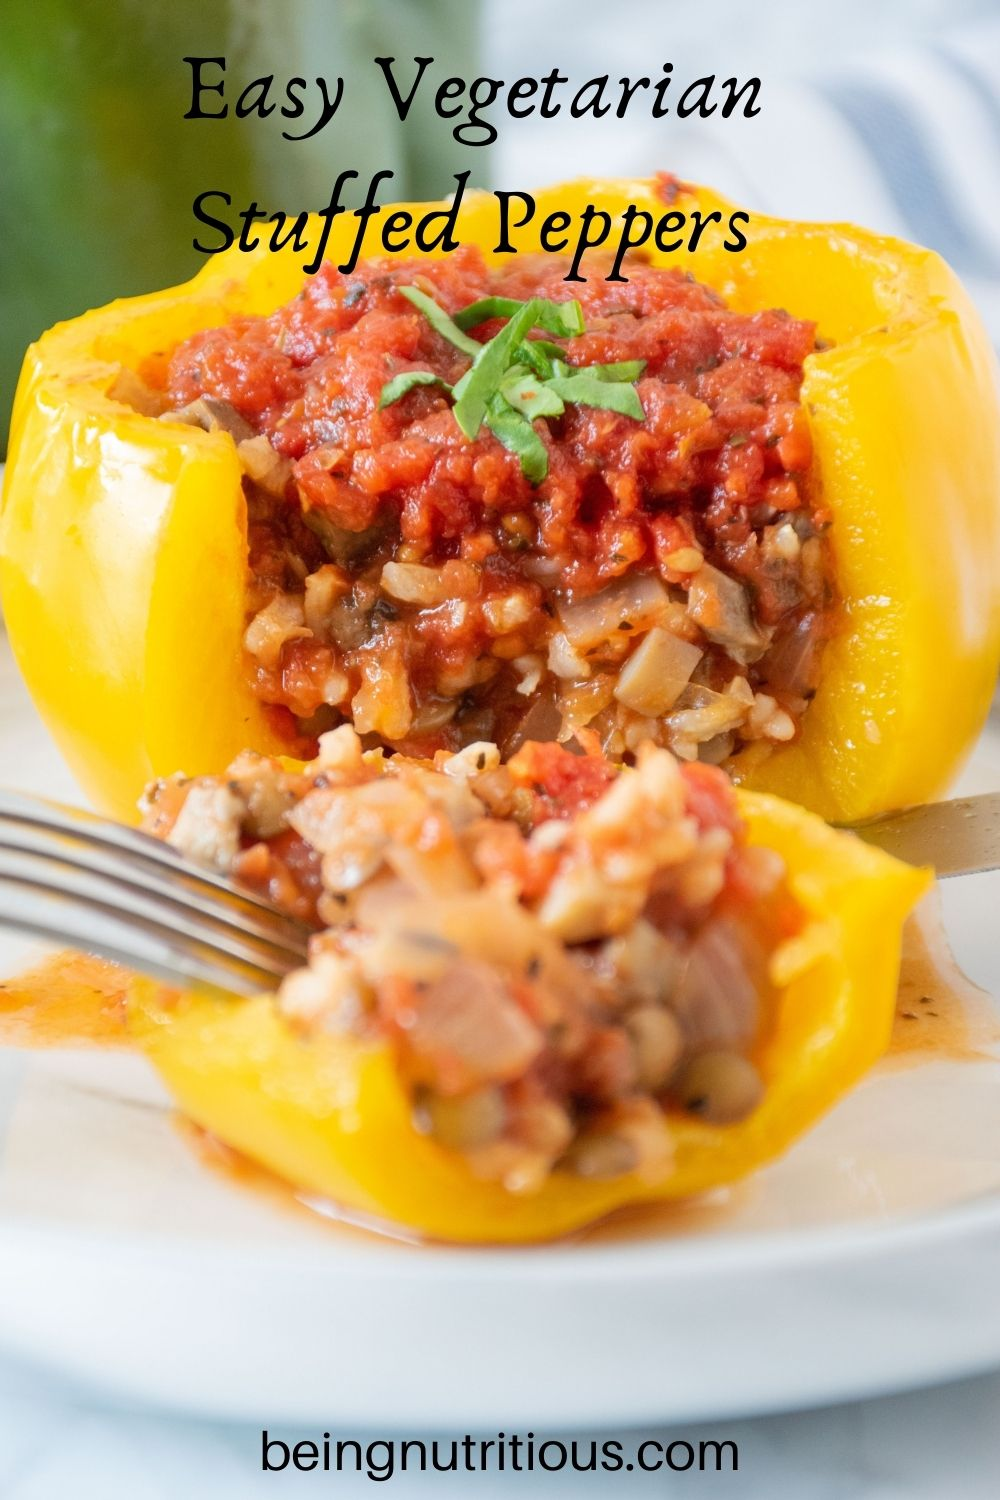 A yellow stuffed pepper, side cut open to reveal stuffing, on a plate. Text overlay: Easy vegetarian stuffed peppers.